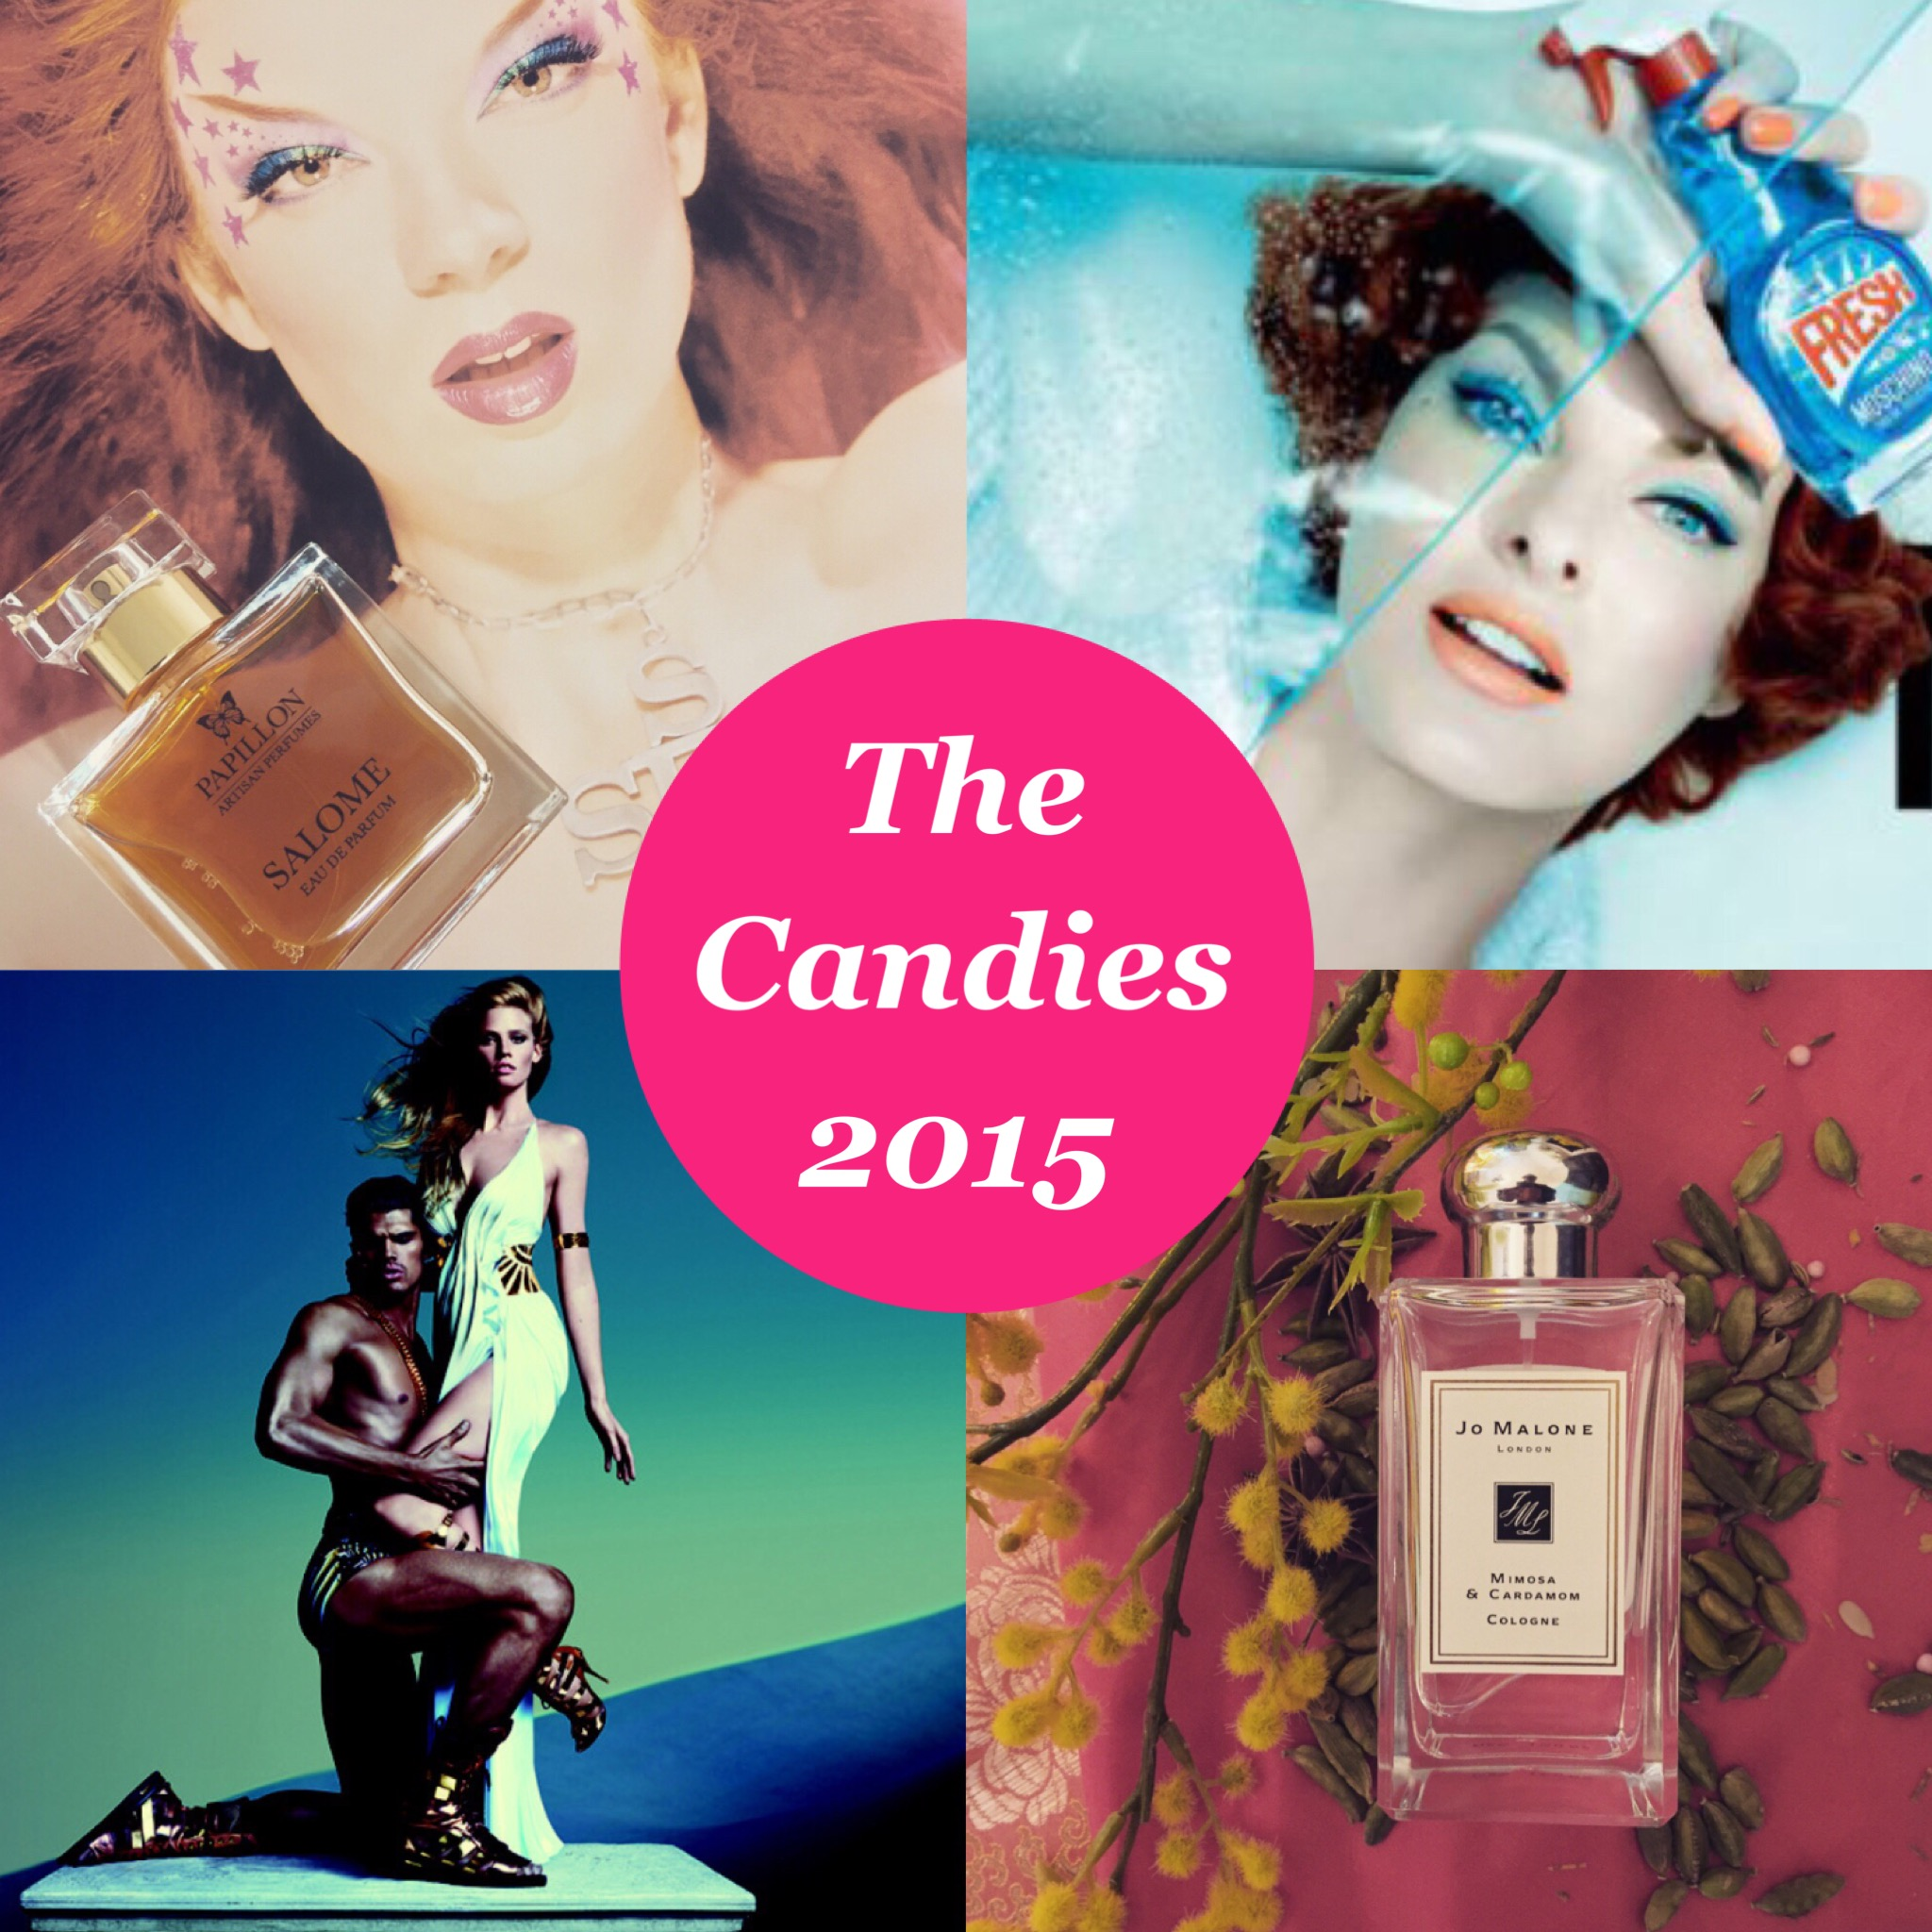 The Candies 2015: The Very Best and The Very Worst Perfumes of the Year